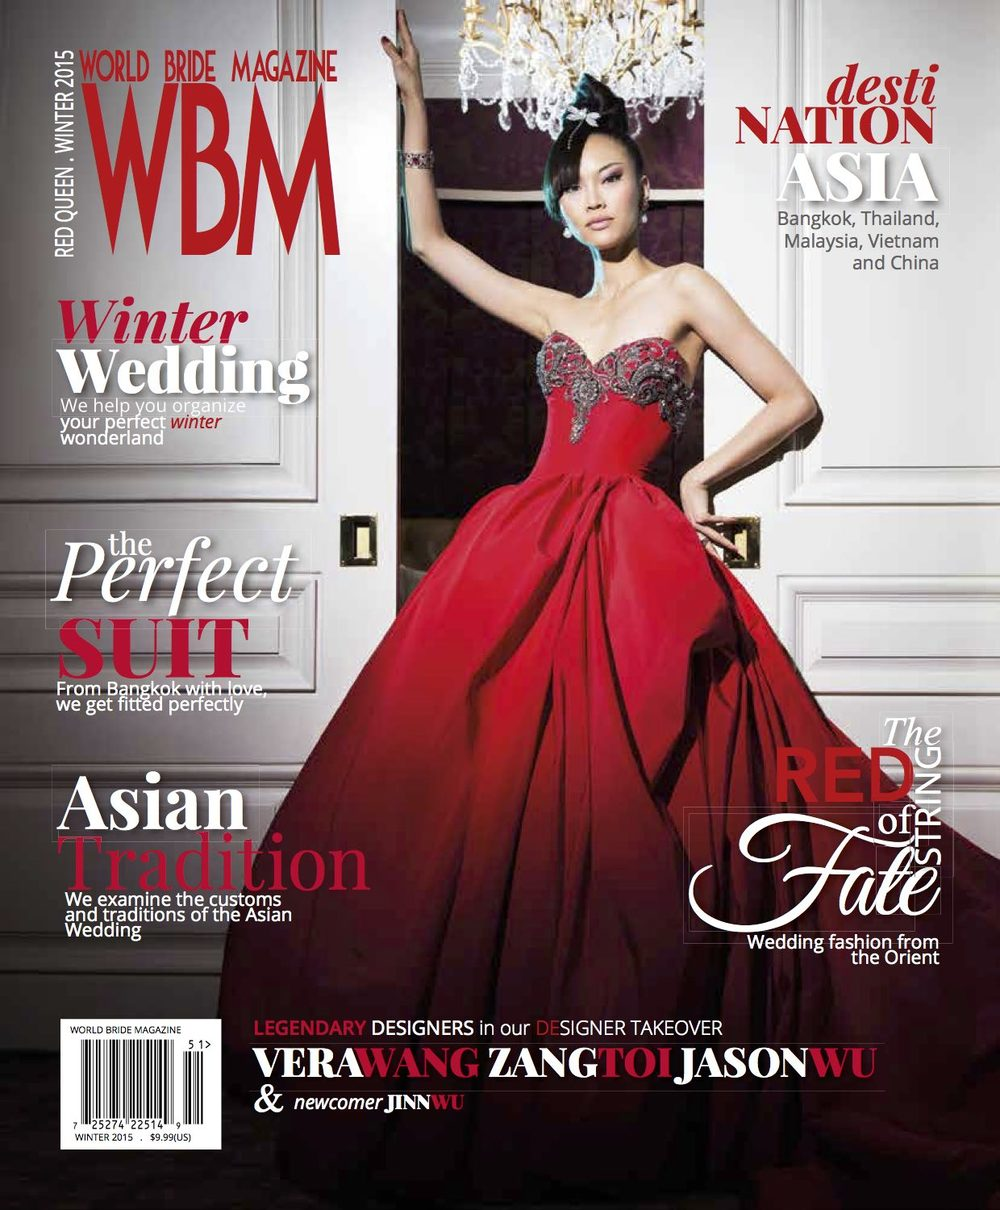 World Bride Magazine Winter 2015